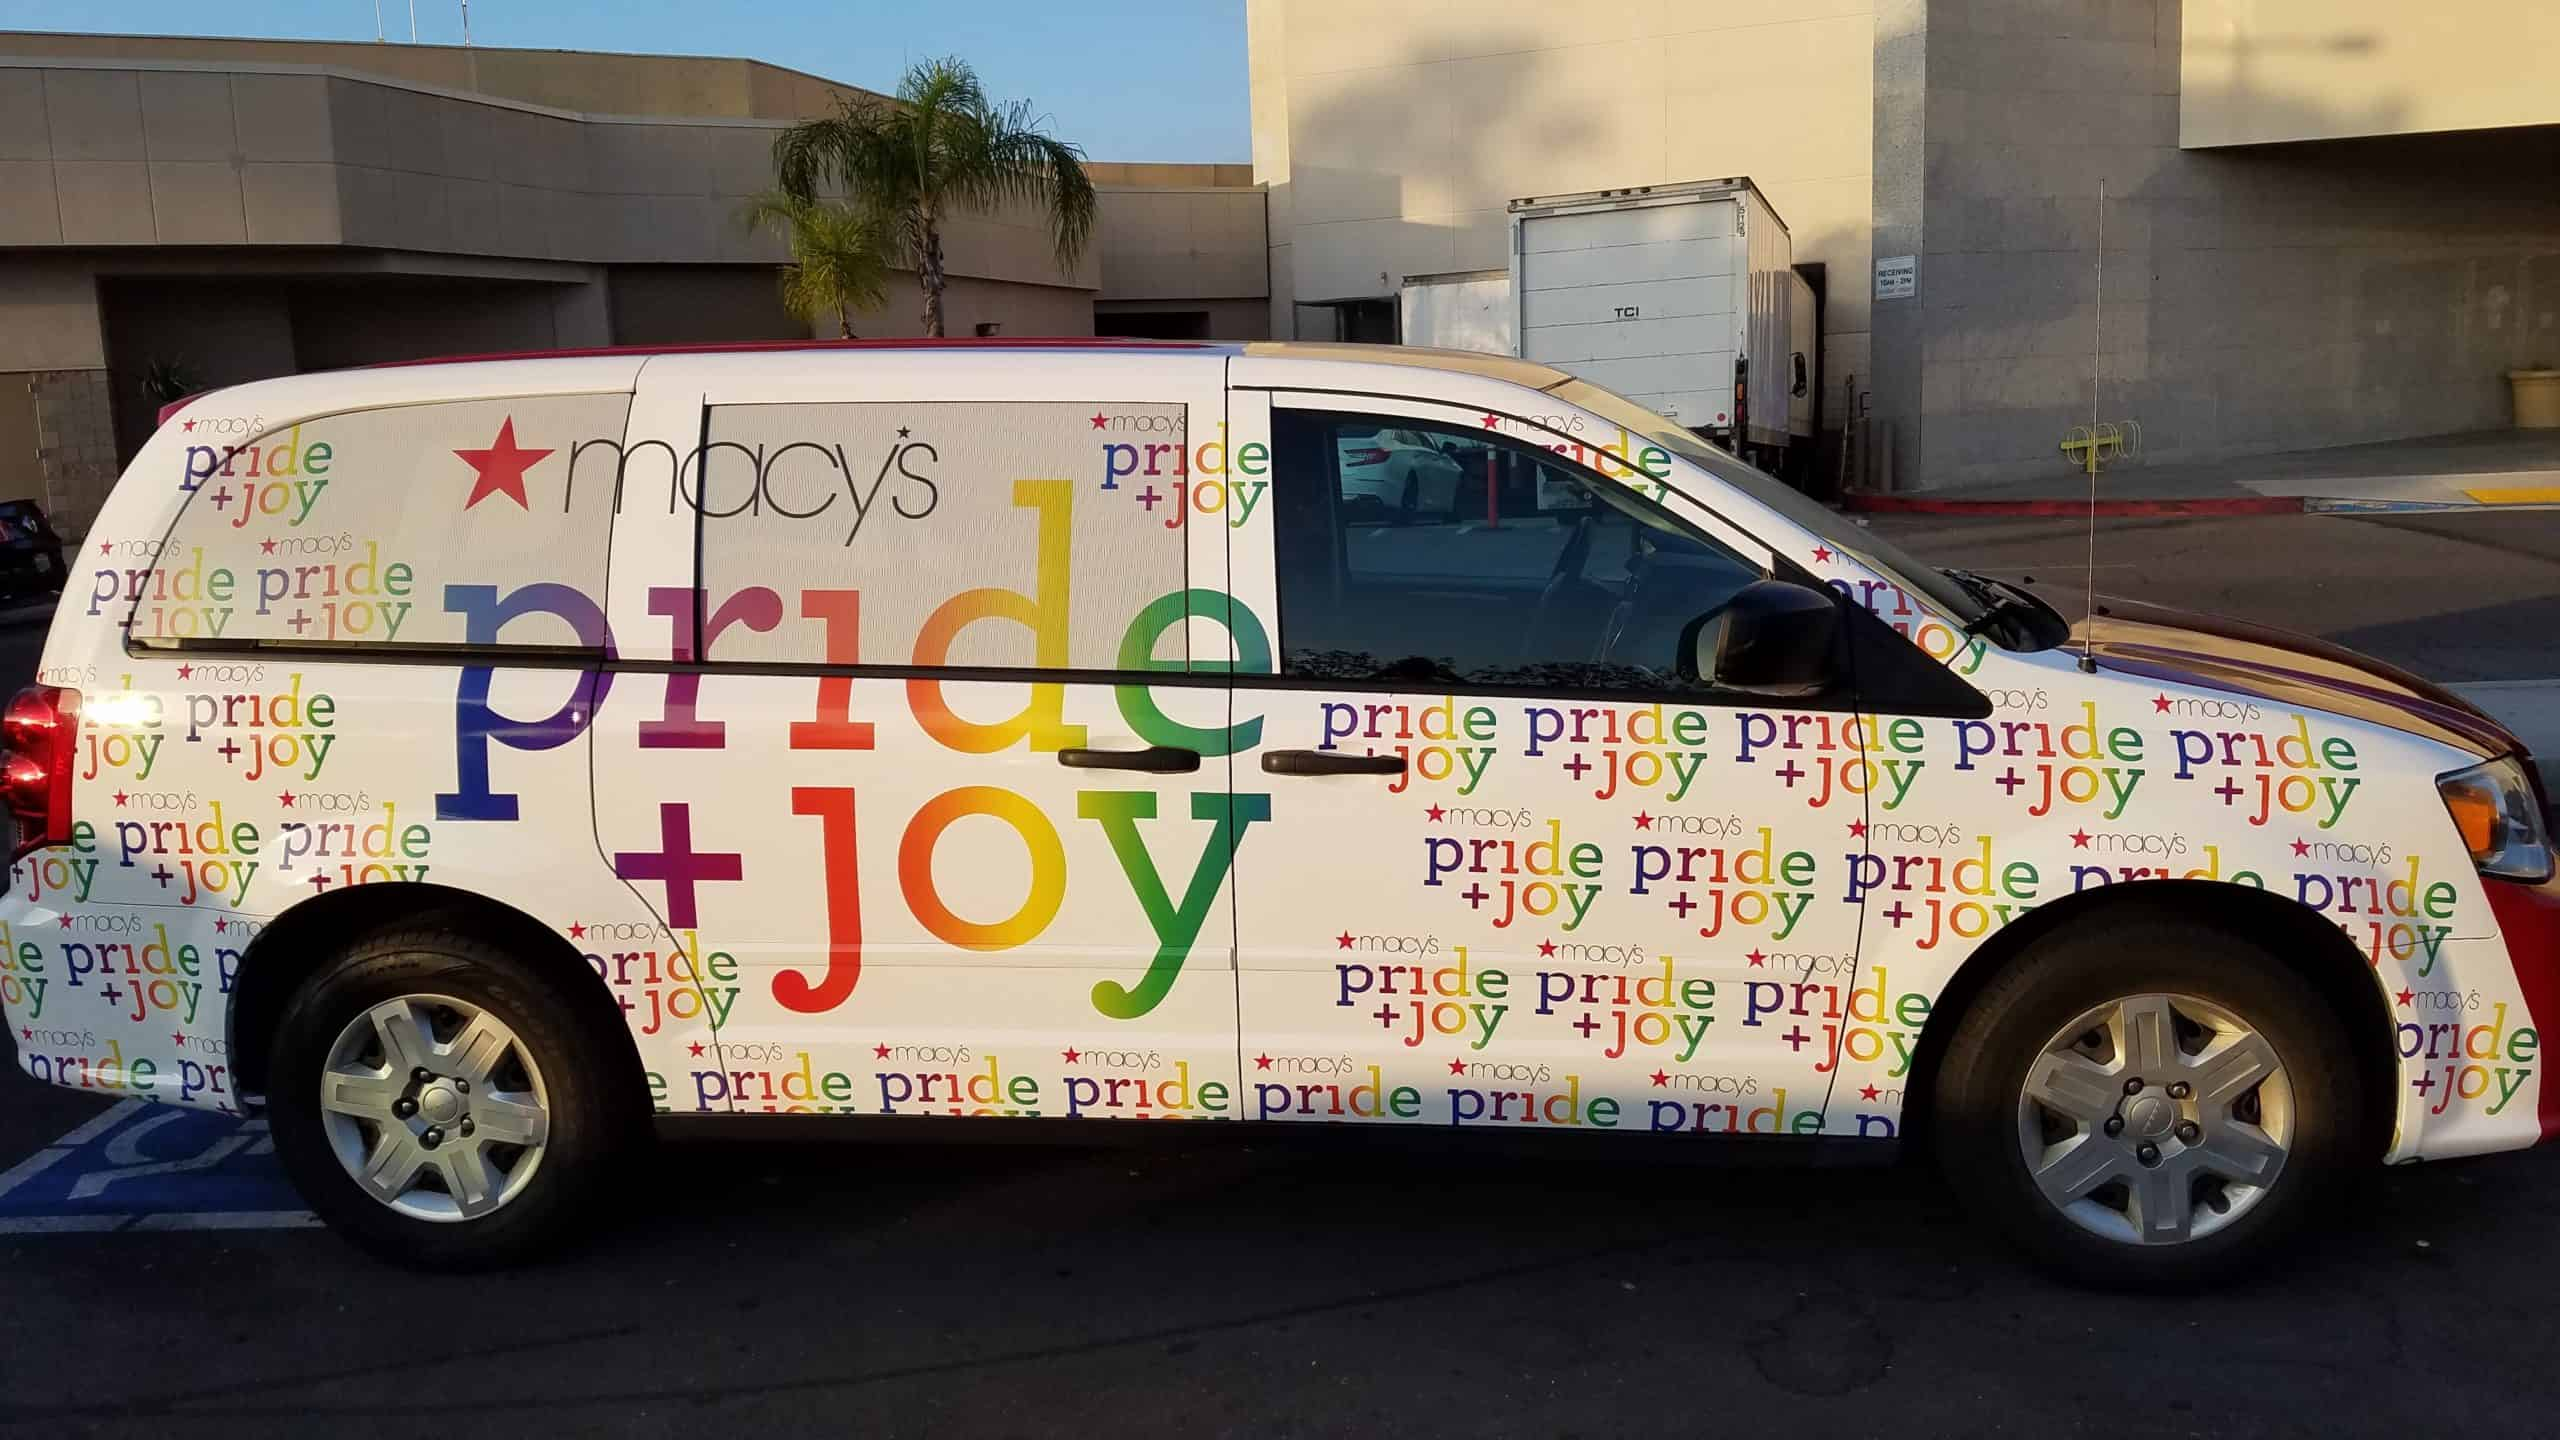 Graphic Wraps for Fleet Vehicles. As the most cost-effective form of advertising¹, vehicle graphics are a powerful way to connect with customers on the go